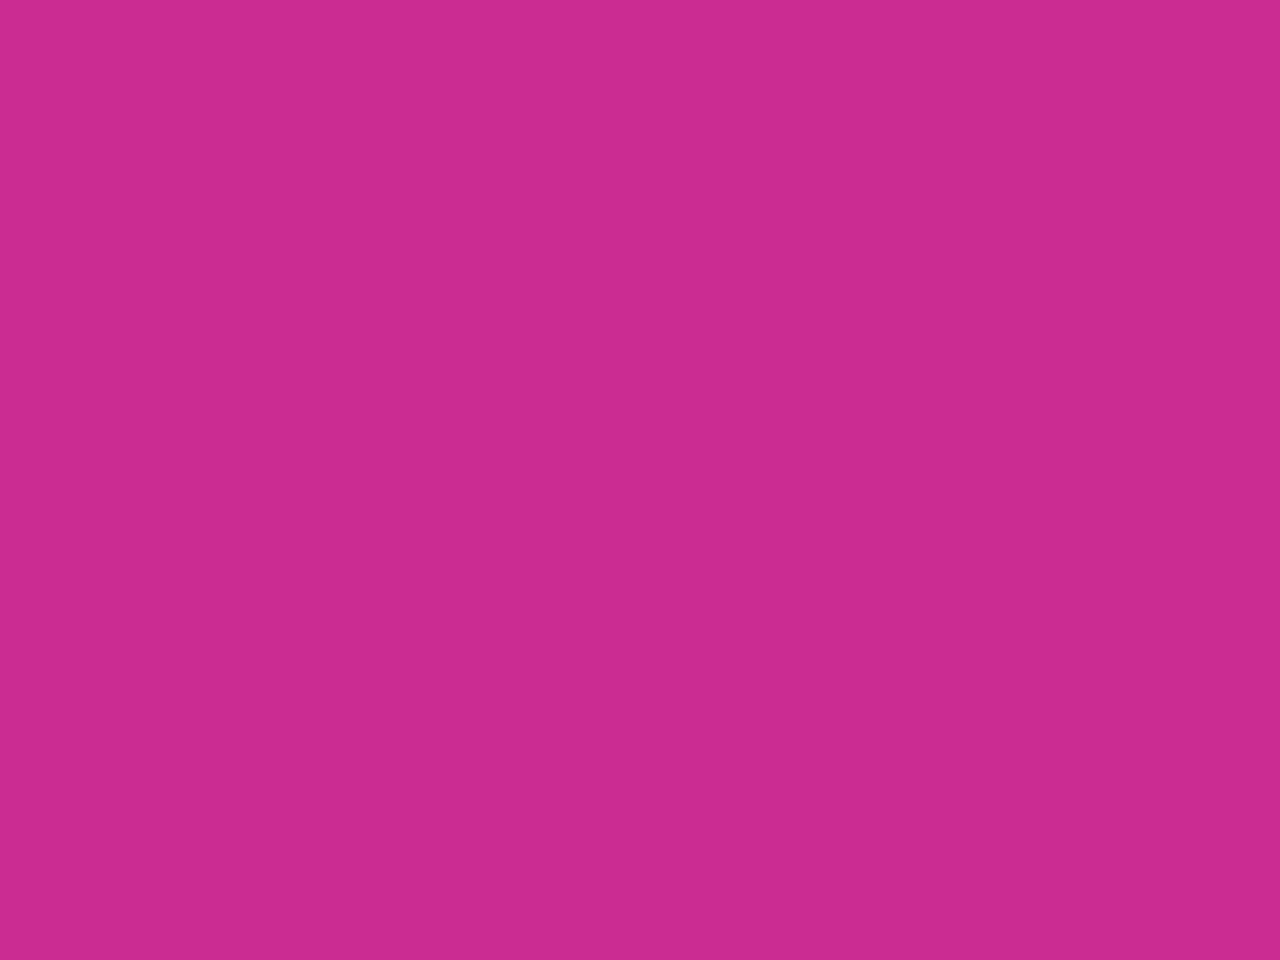 1280x960 Royal Fuchsia Solid Color Background